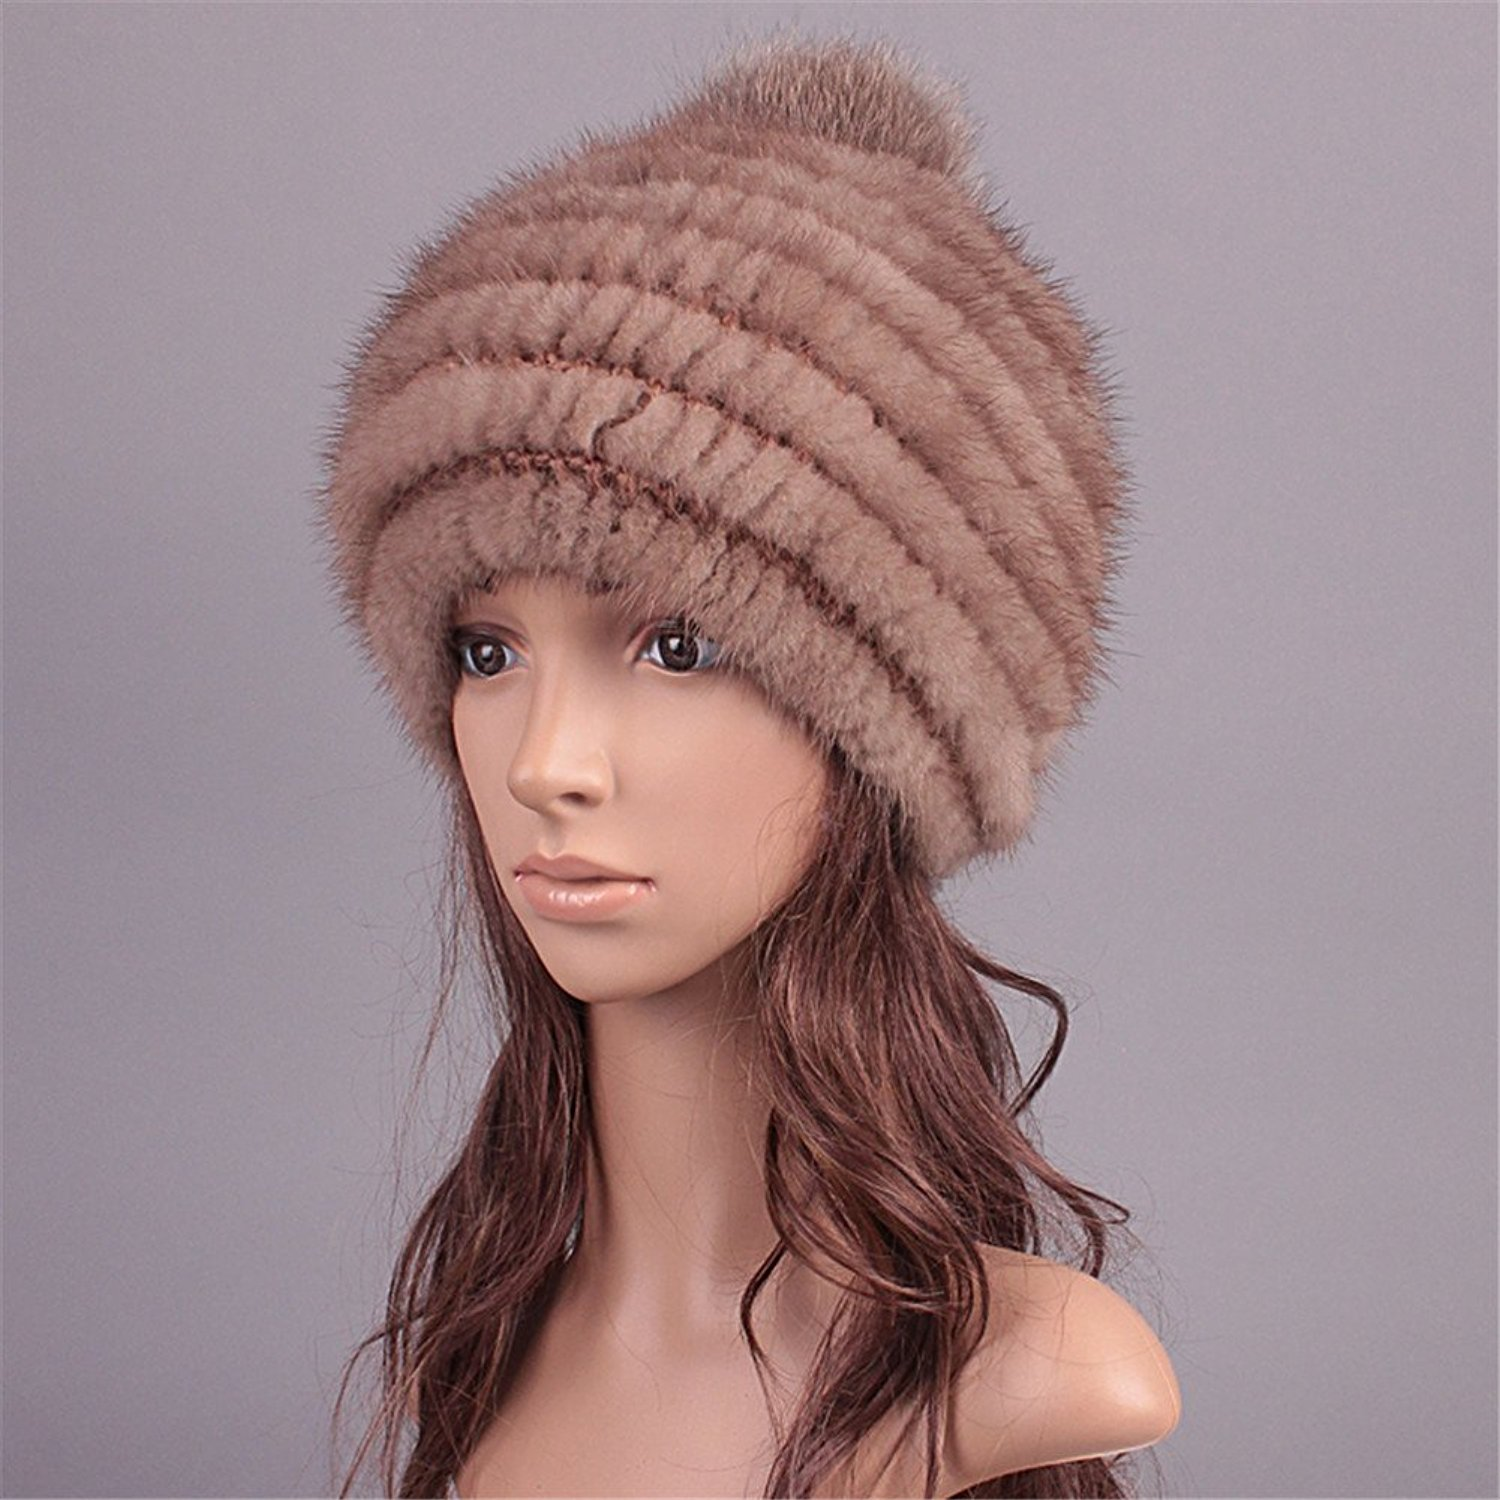 2f60c566a70 Buy Roniky Womens Girls Cute Real Mink Fur Knitted Hat with Fur Pom ...